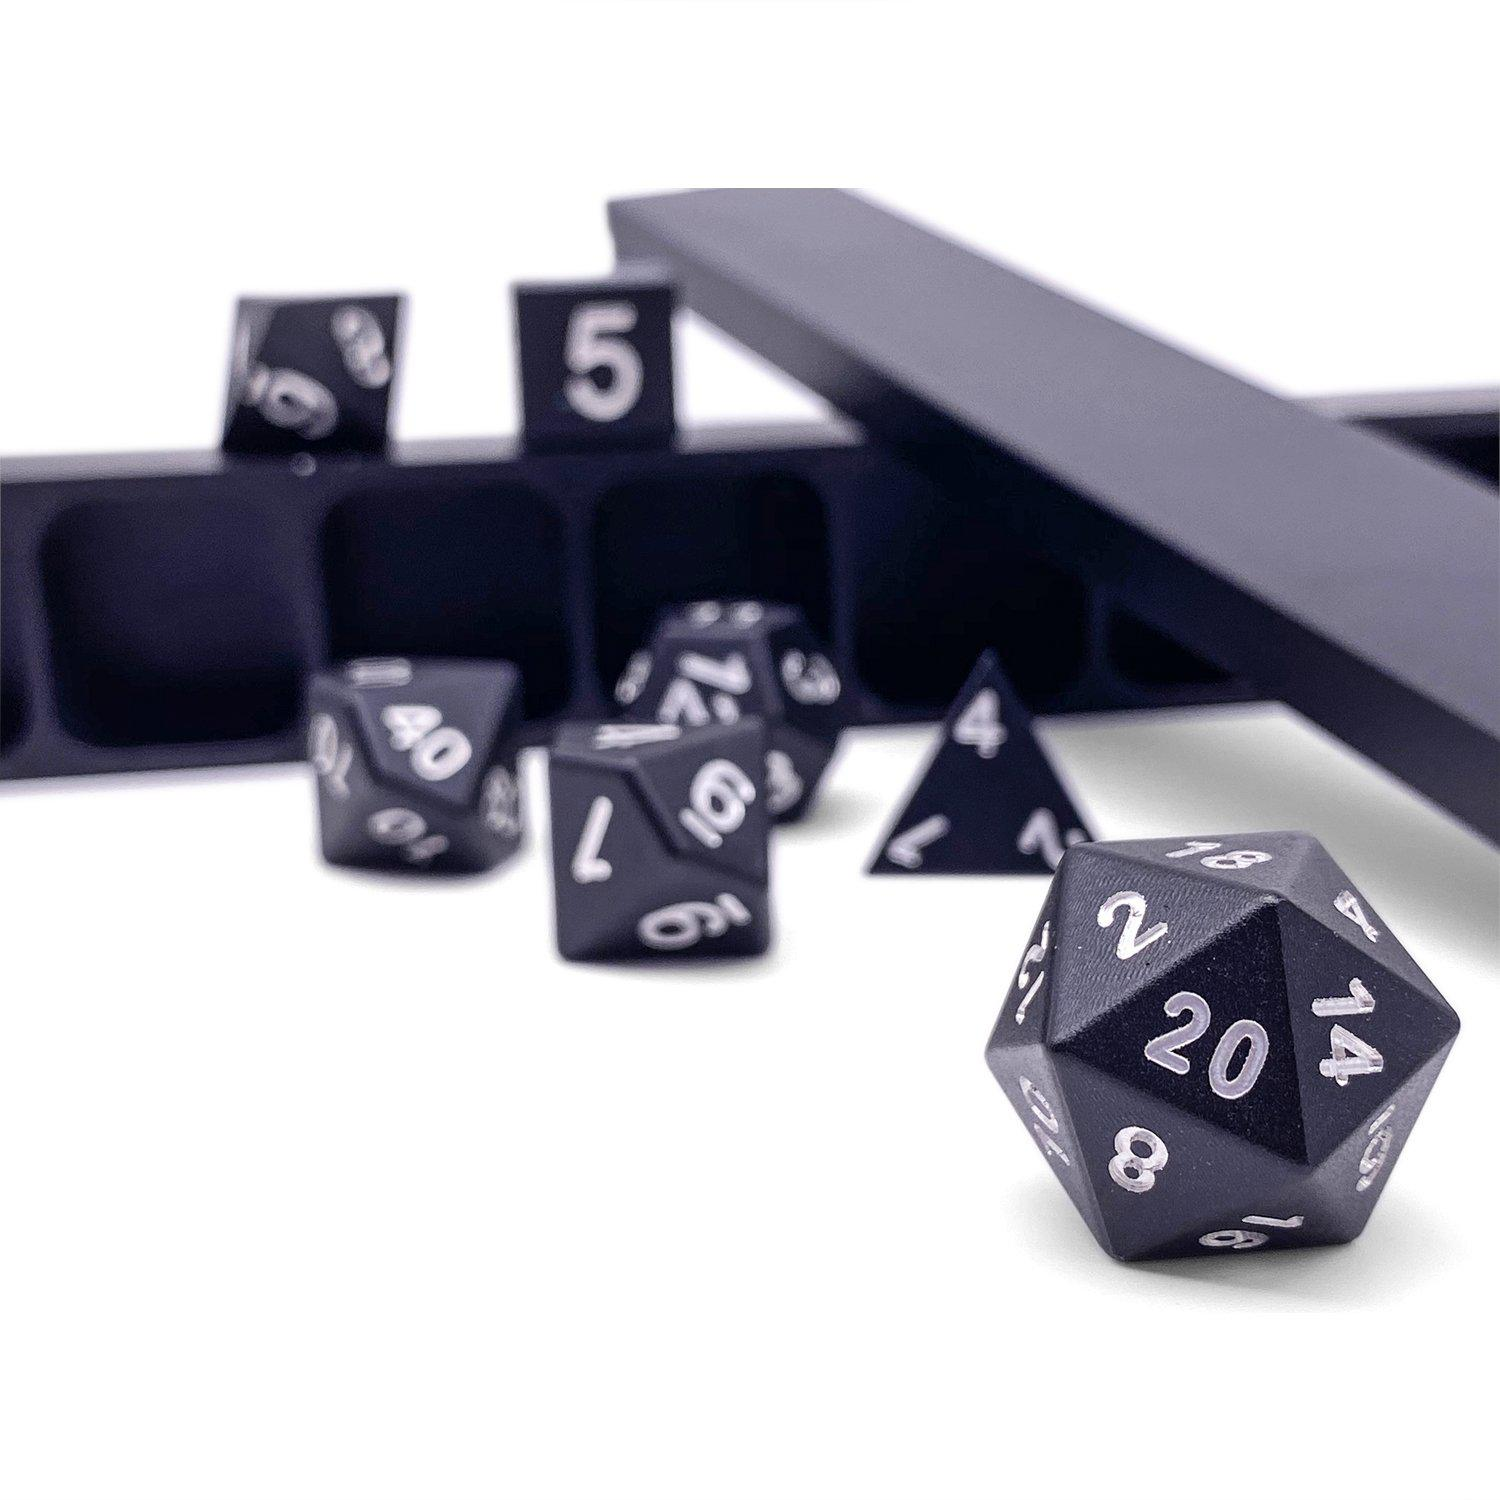 Night Black - Precision CNC Aluminum Dice Set with Dice Vault